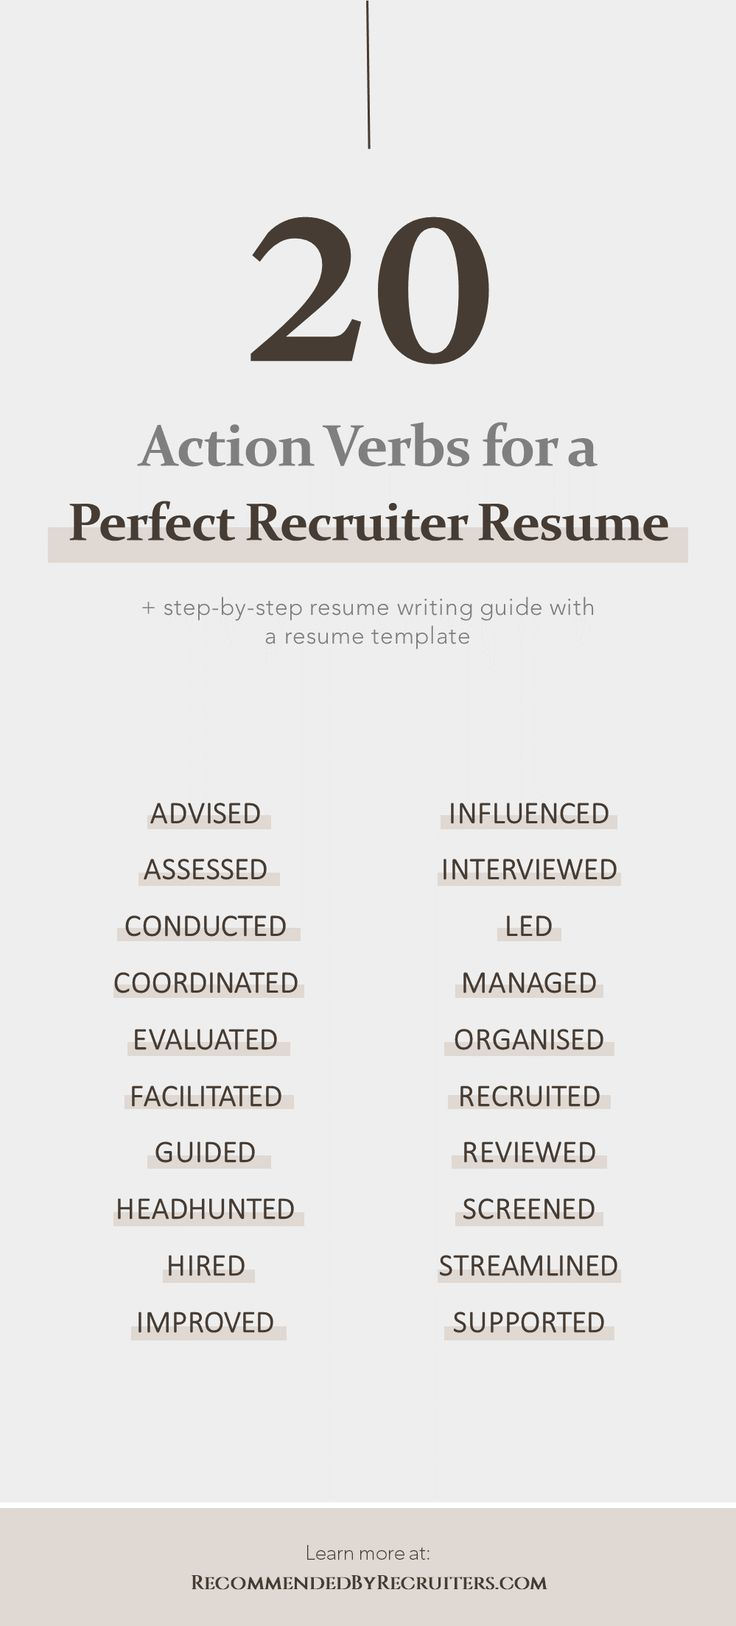 Action Verbs for a Perfect Recruiter Resume, Power Words